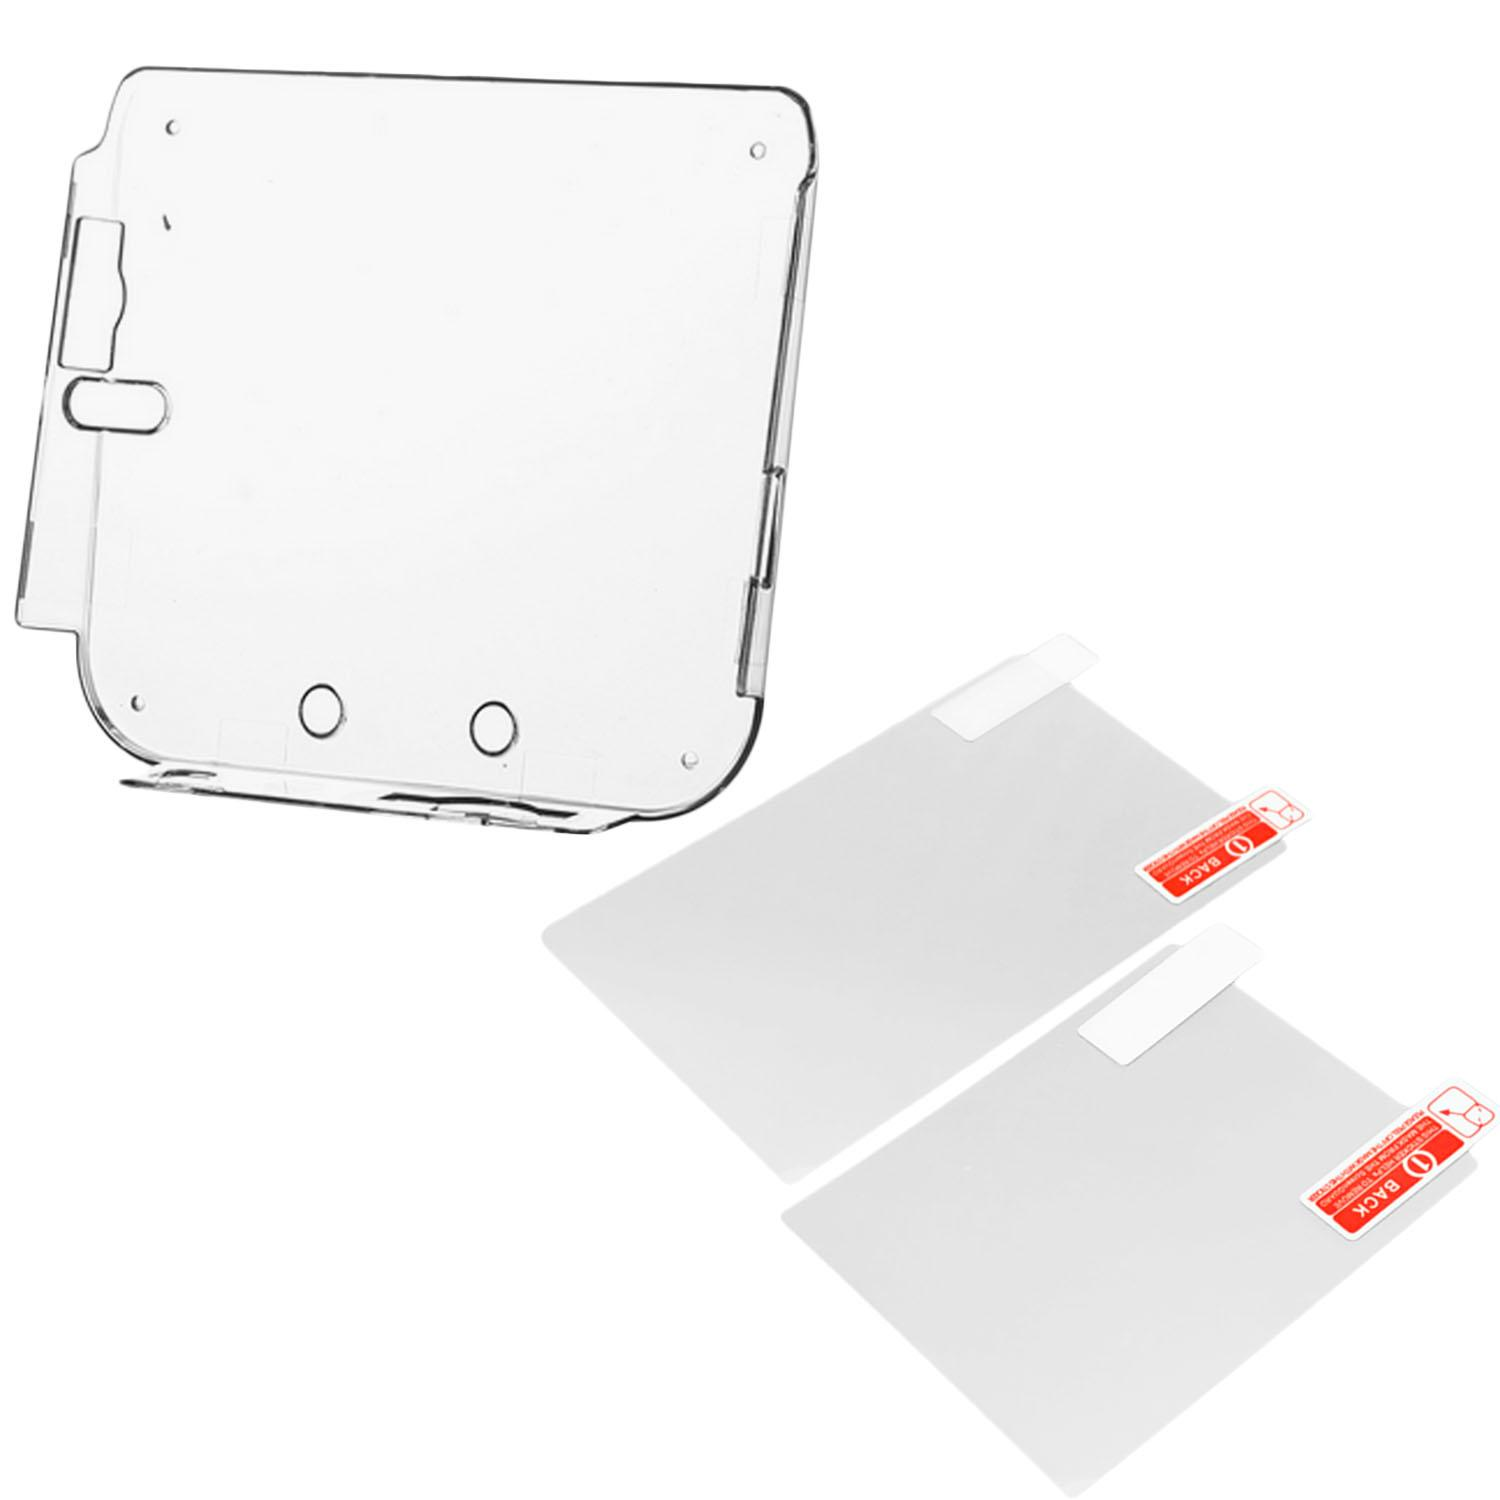 Hình ảnh Clear Shockproof Silicone Protective Skin Wrap Case Cover Shell Sleeve with 2 Screen Protector Film for Nintendo 2DS Console - intl